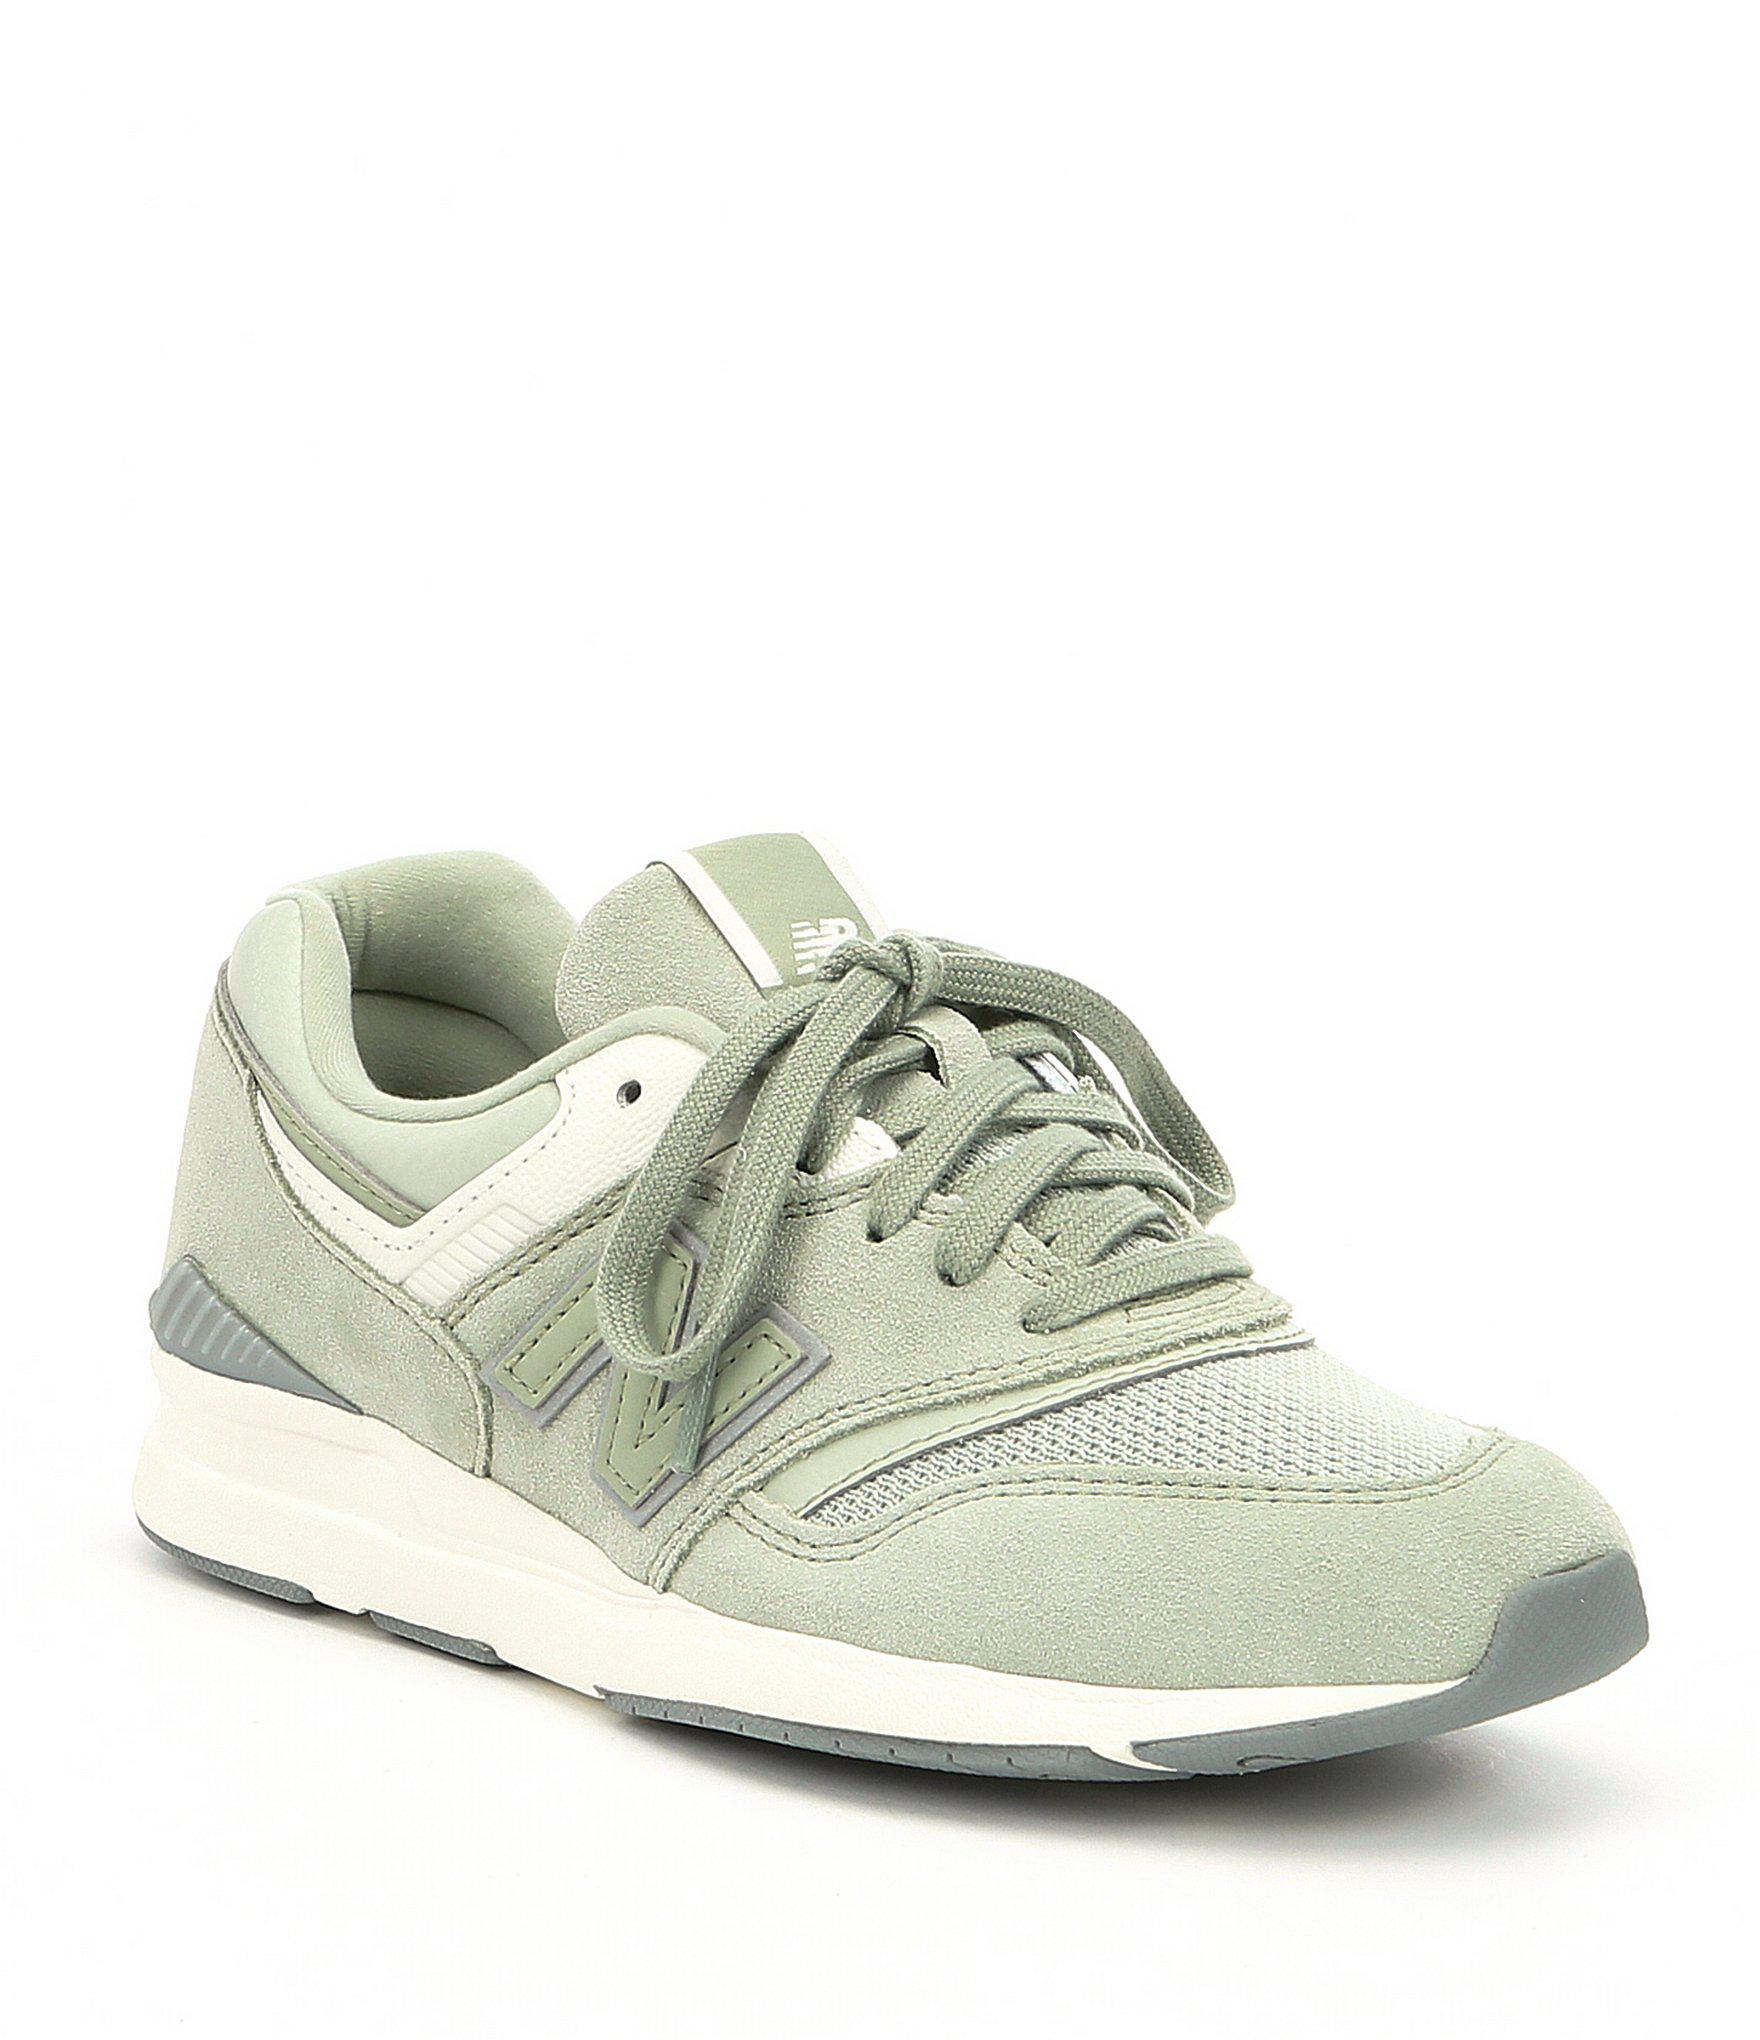 pretty nice b49e6 2b15d Lyst - New Balance Women s 697 Suede And Mesh Lifestyle Sneakers in ...